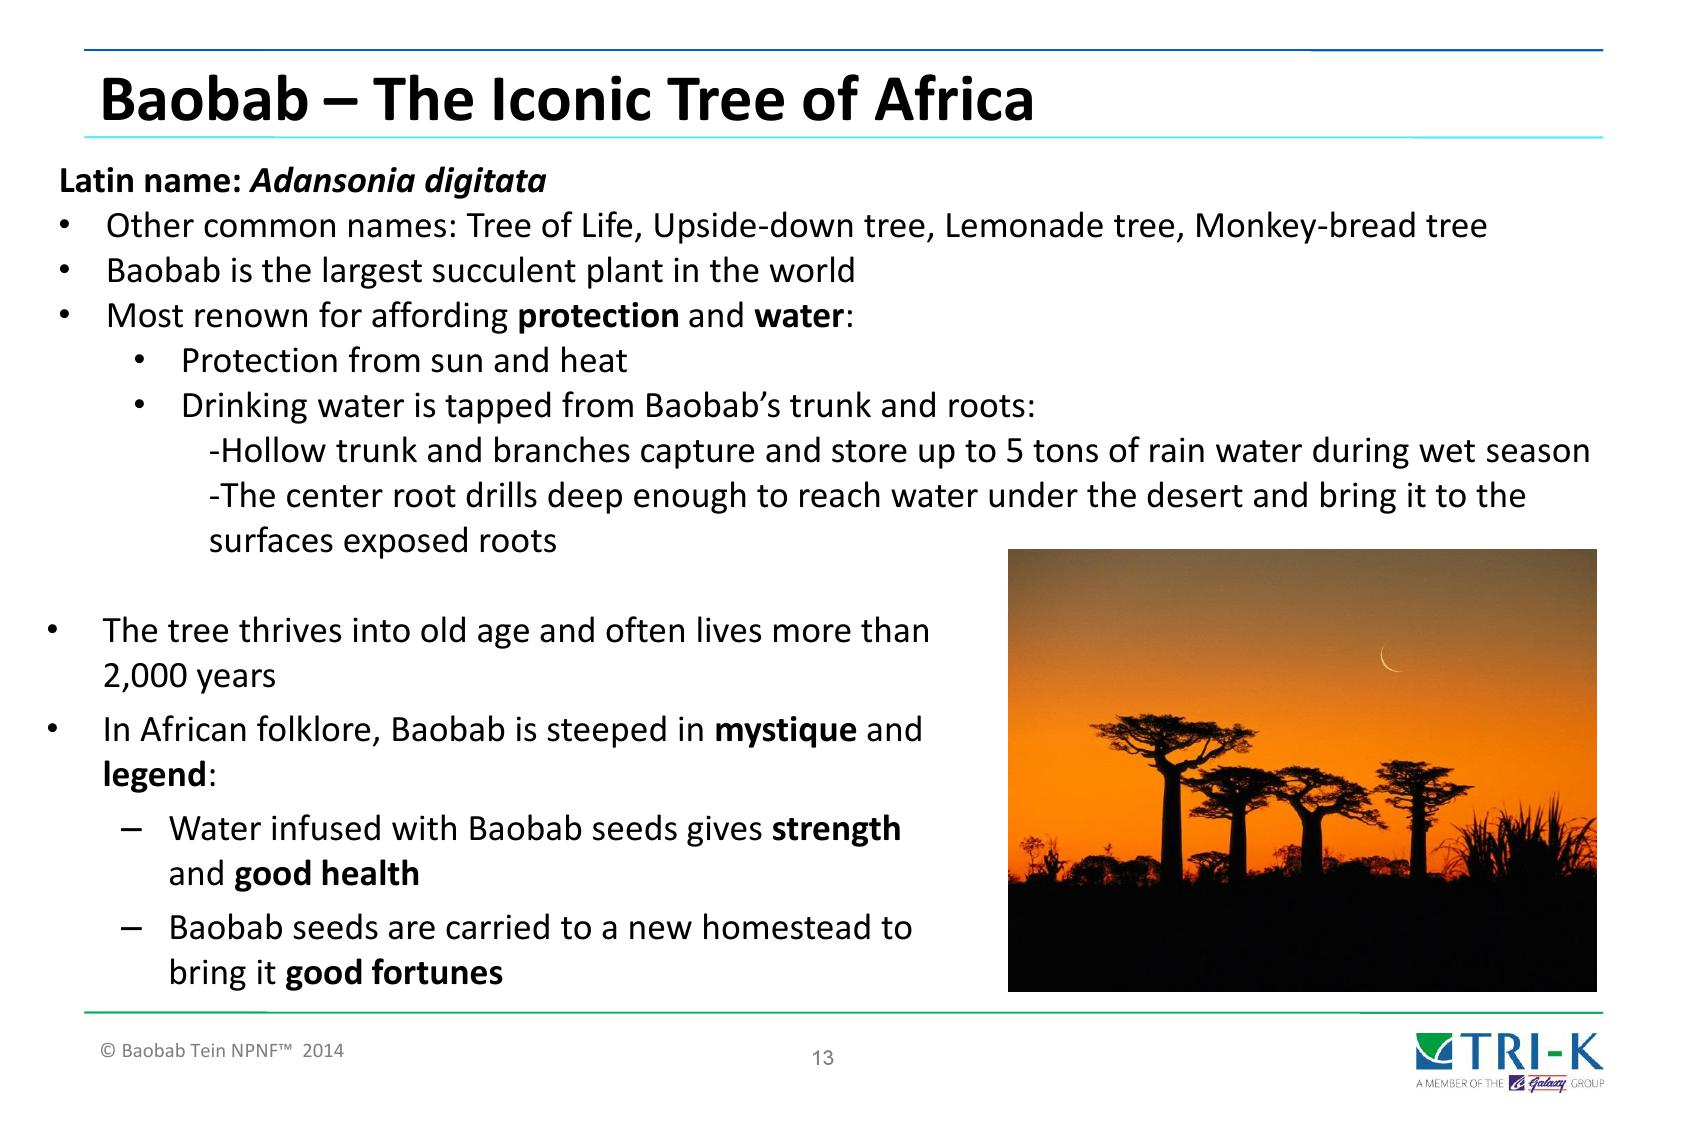 final-baobab-tein-npnf-global-presentation-4.2014-000013.jpg